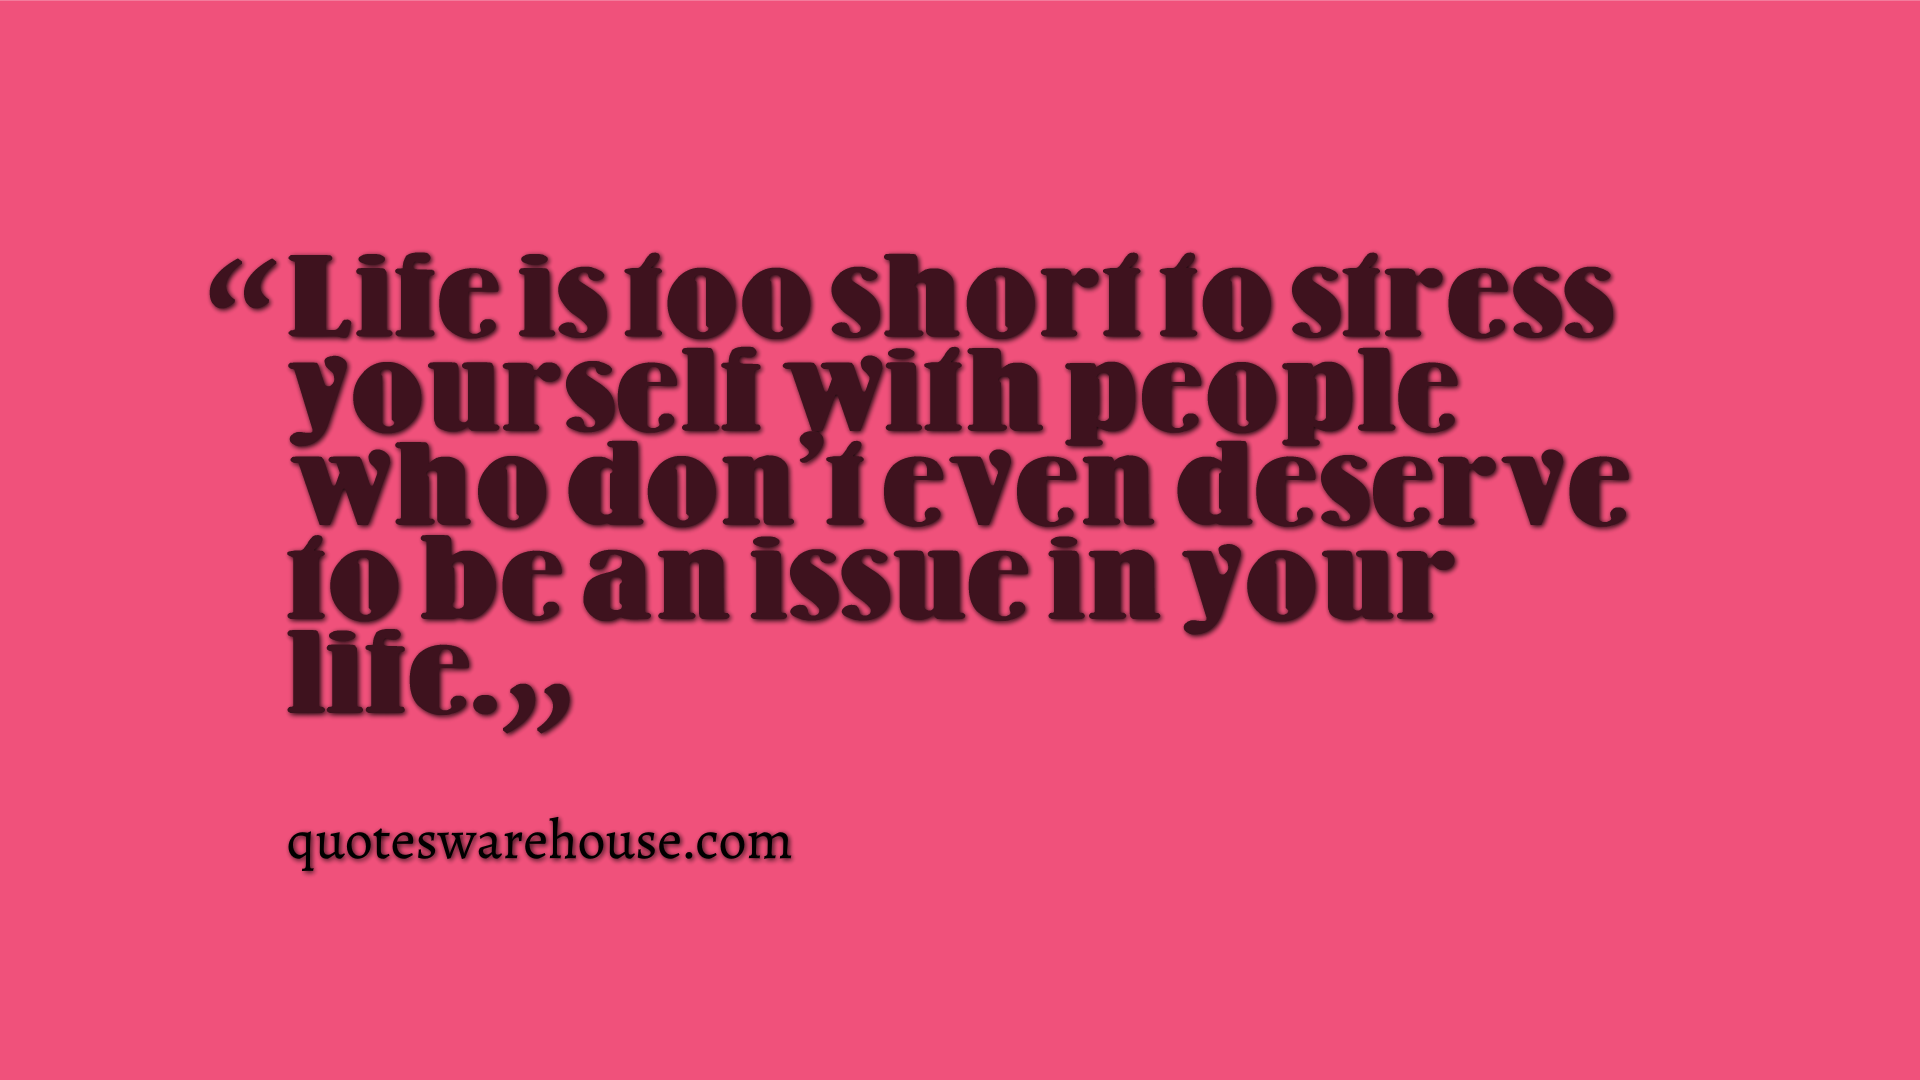 Life Stress Quotes Life Is Too Short To Stress Yourself With People Who Don't Even